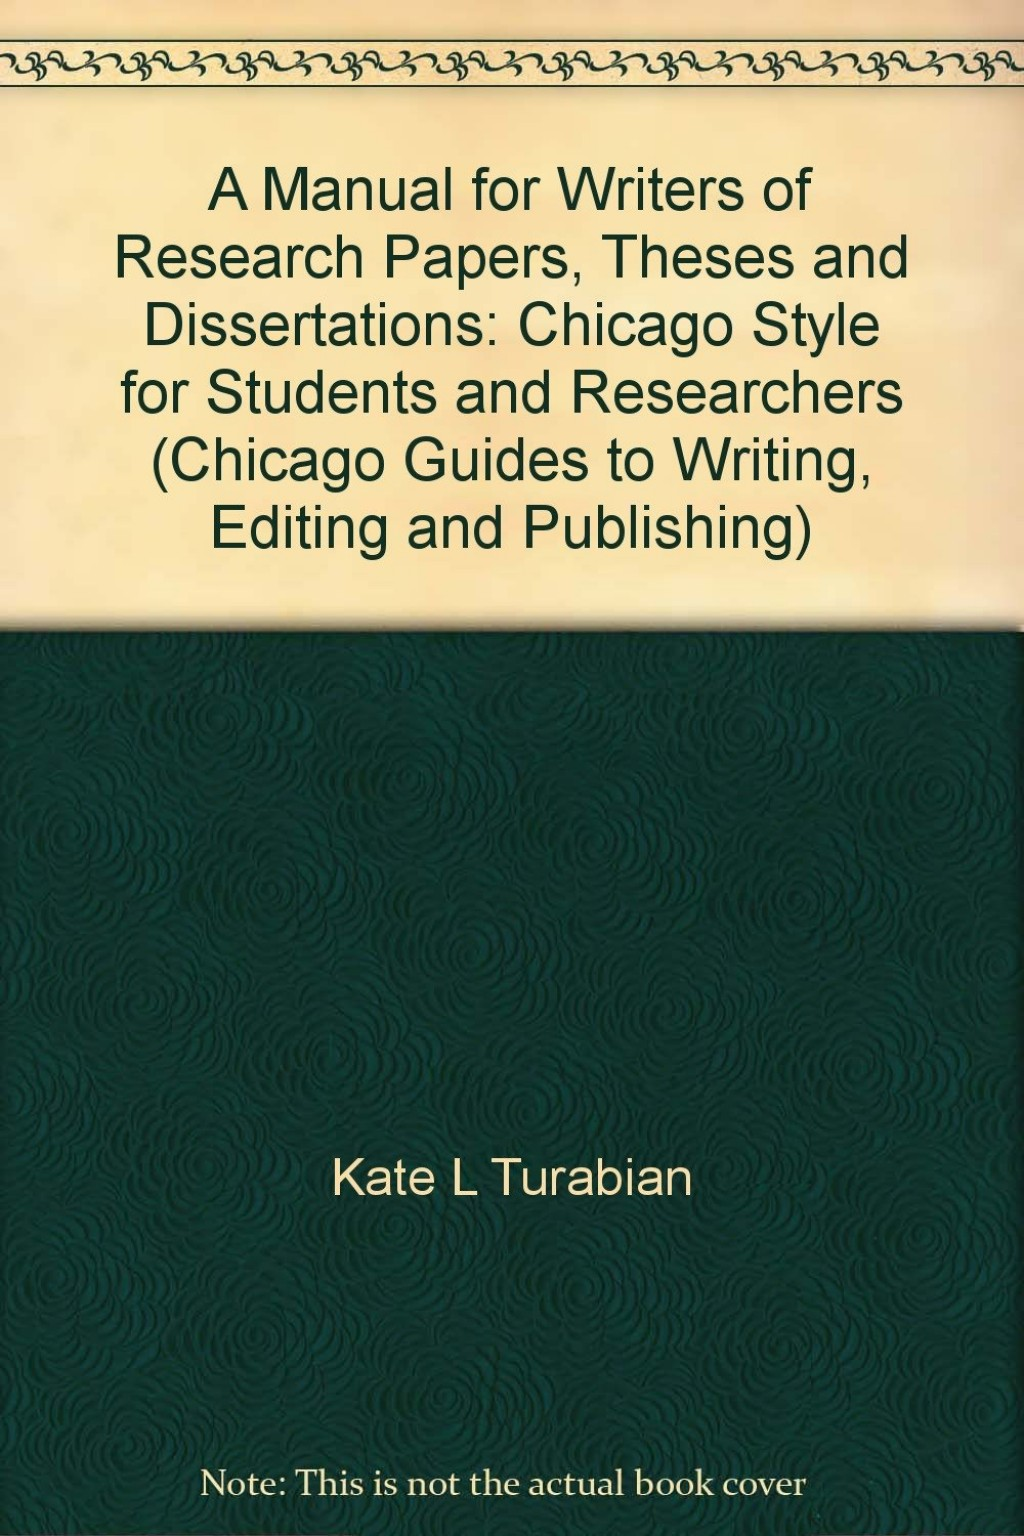 025 Research Paper Manual For Writers Of Papers Theses And Dissertations Turabian Amazing A Pdf Large